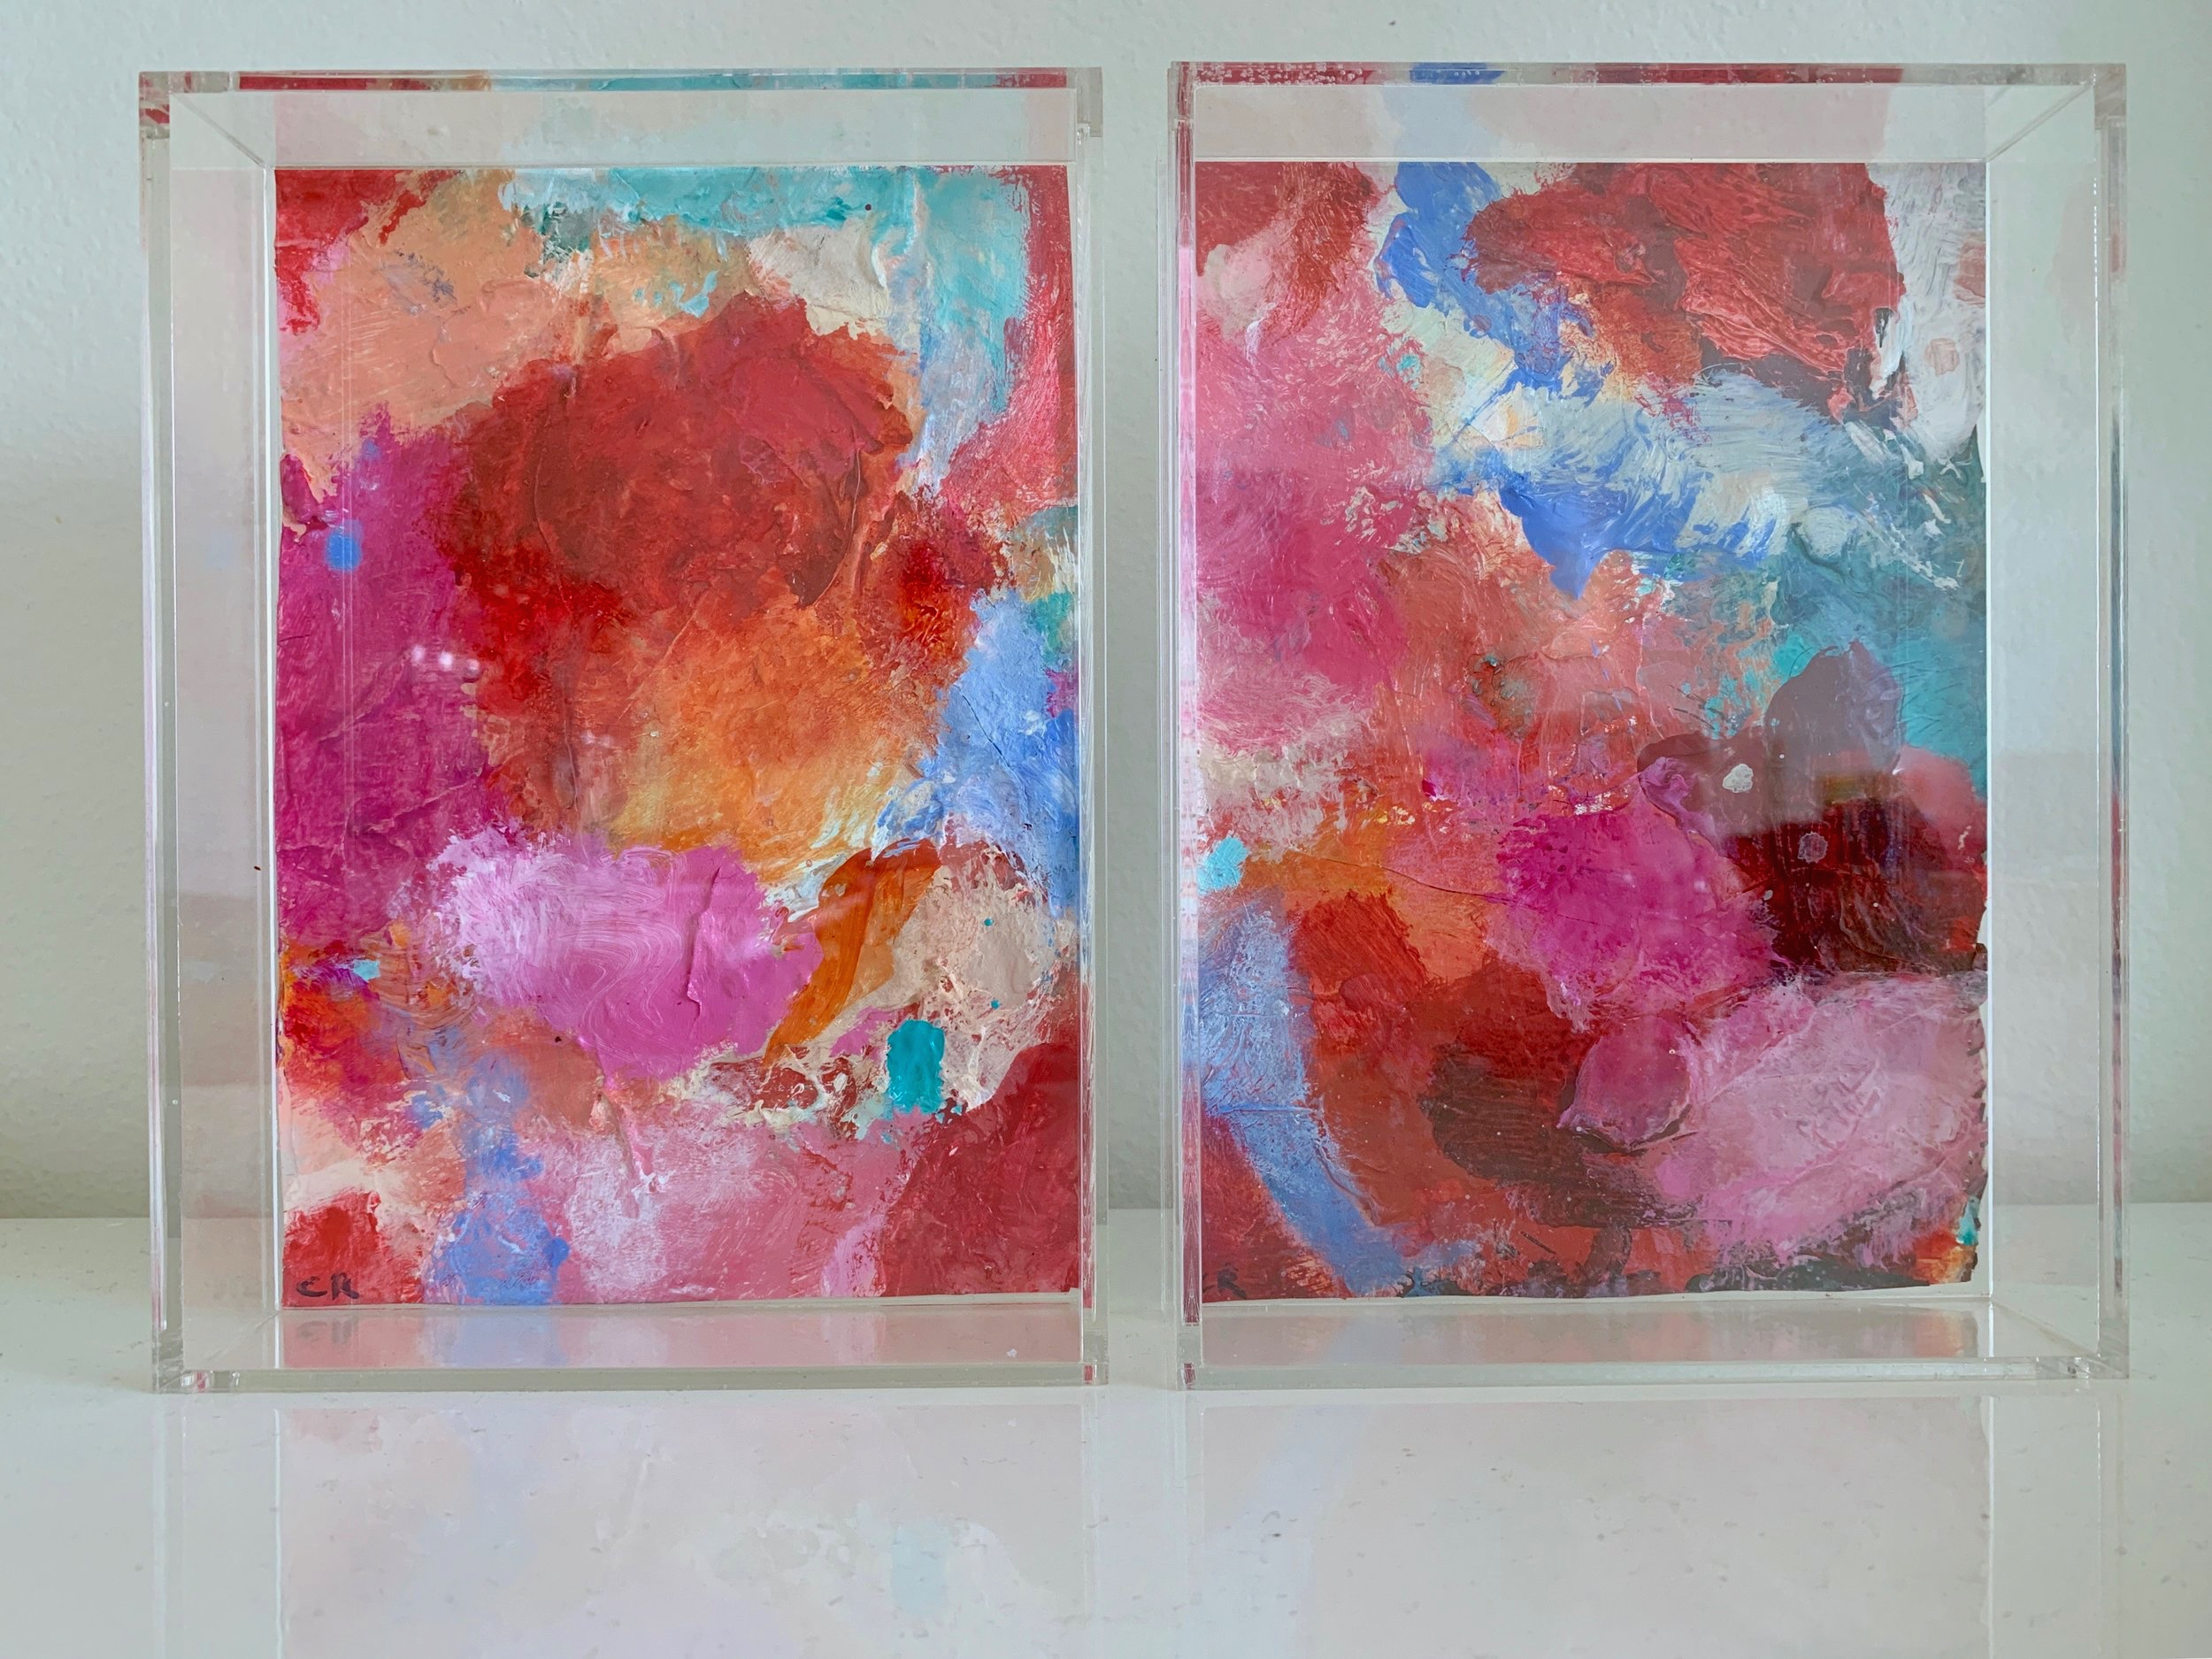 Pink & Blue Abstracts in Perspex